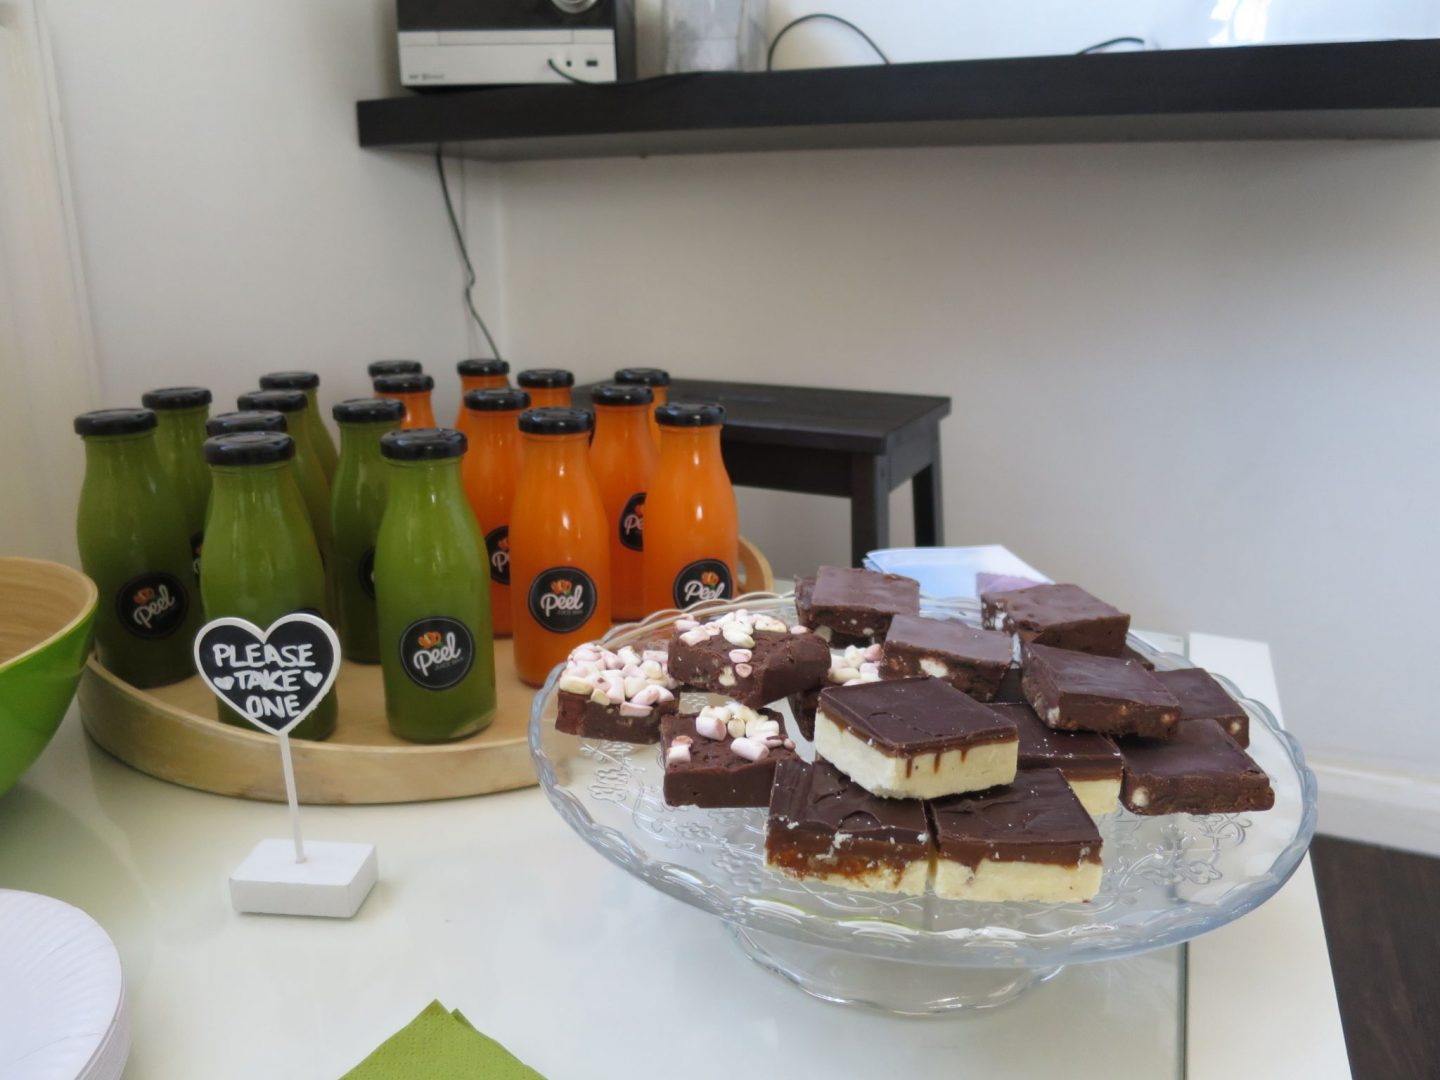 Peel juice bar juices and cakes at Whitespace Studio